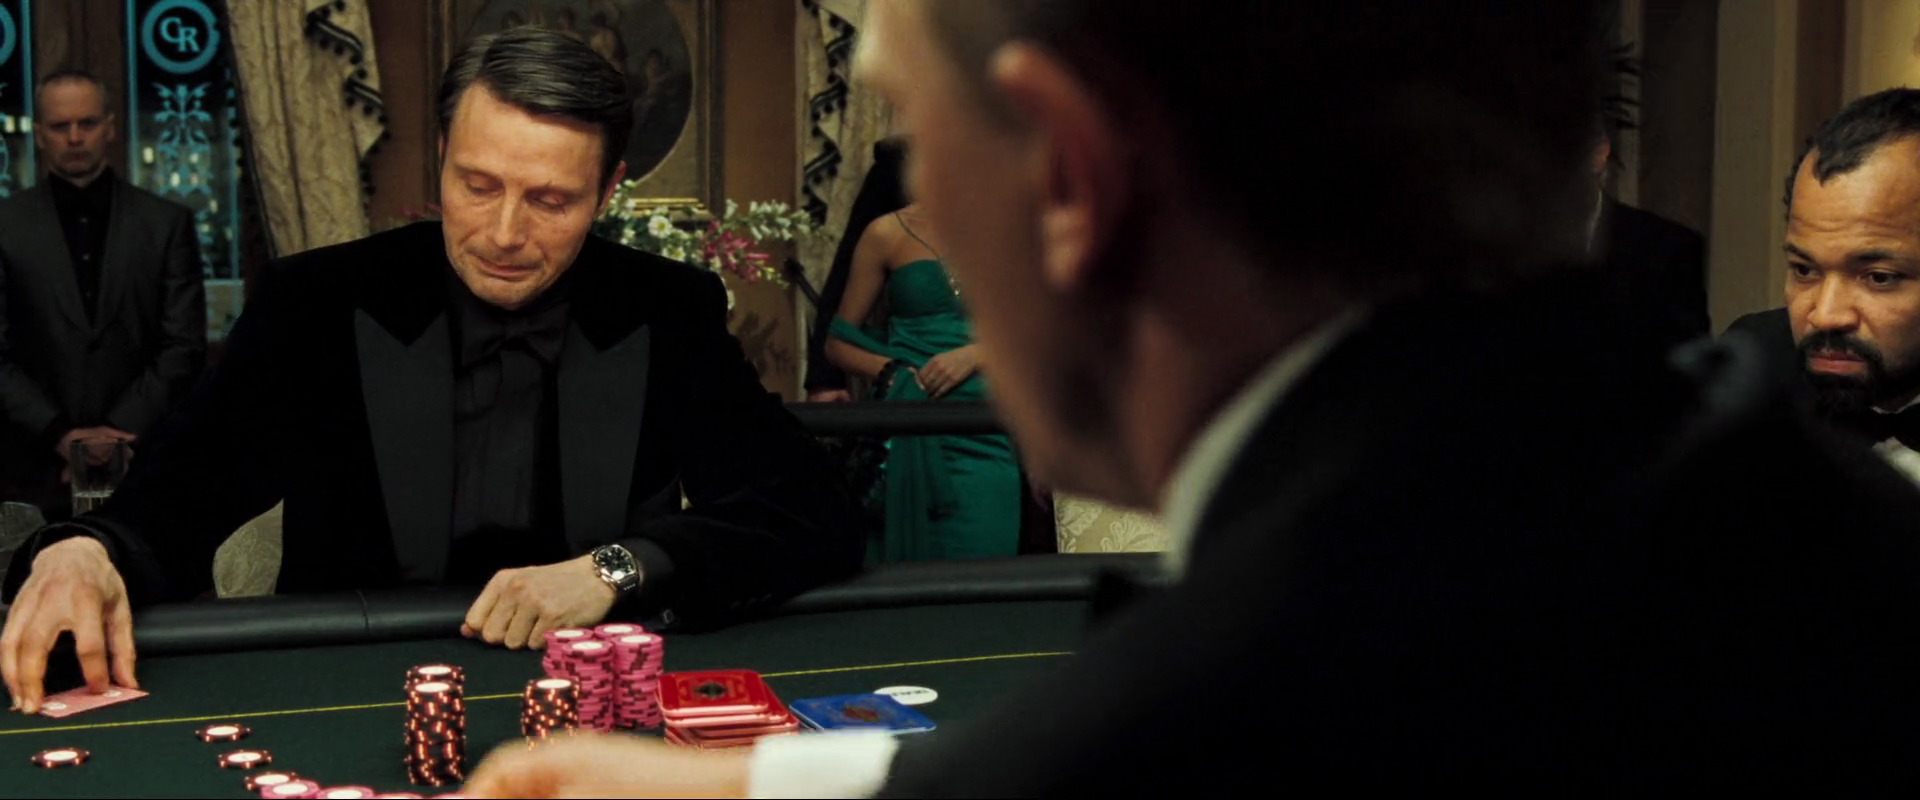 casino full movie online